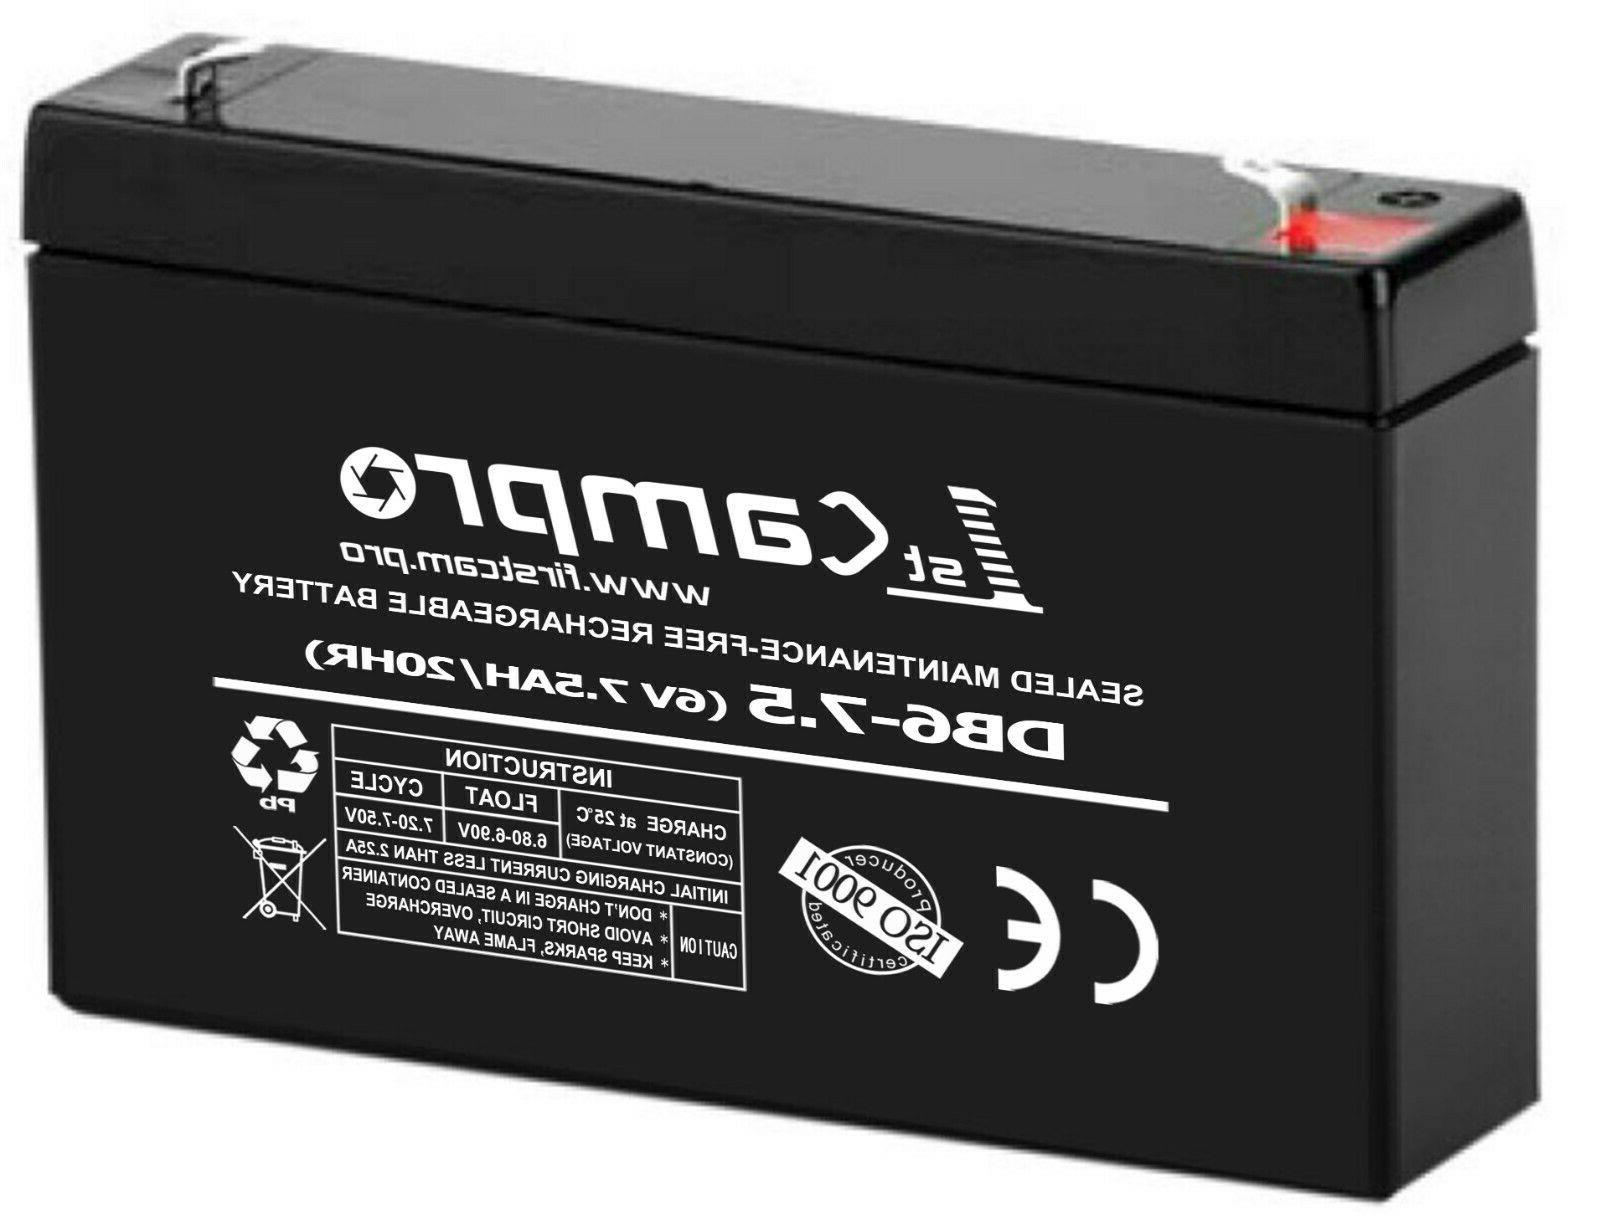 1stCamPro Battery, Charger, Trail